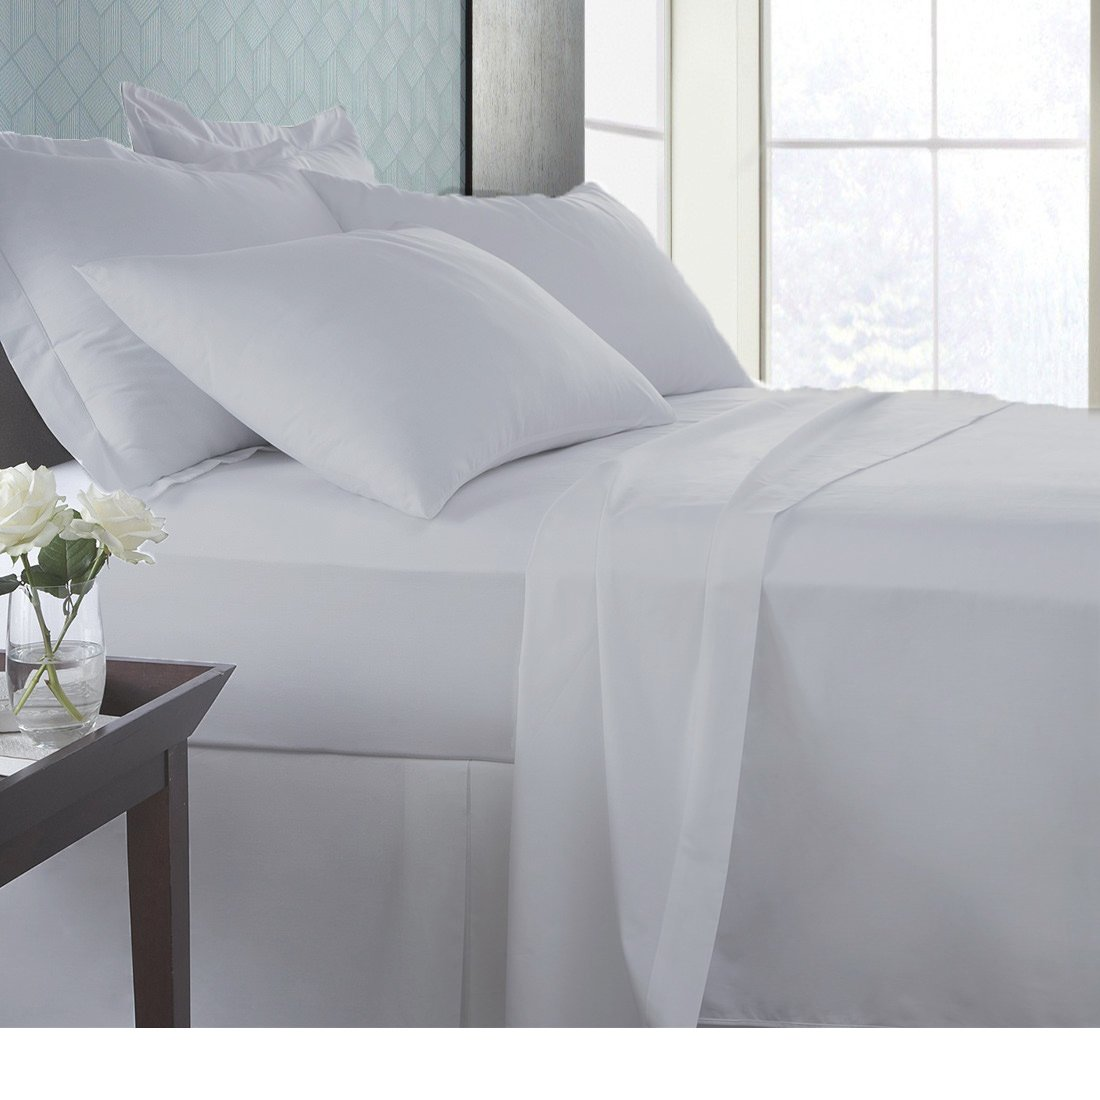 SPA Beddings Present 3 PC Duvet Set 100% Egyptian Cotton 600 Thread Count Premium Duvet Set, Luxurious Feel Italian Finish Comfort Duvet Set with Extra Two Pillow Shames Twin, Silver Grey